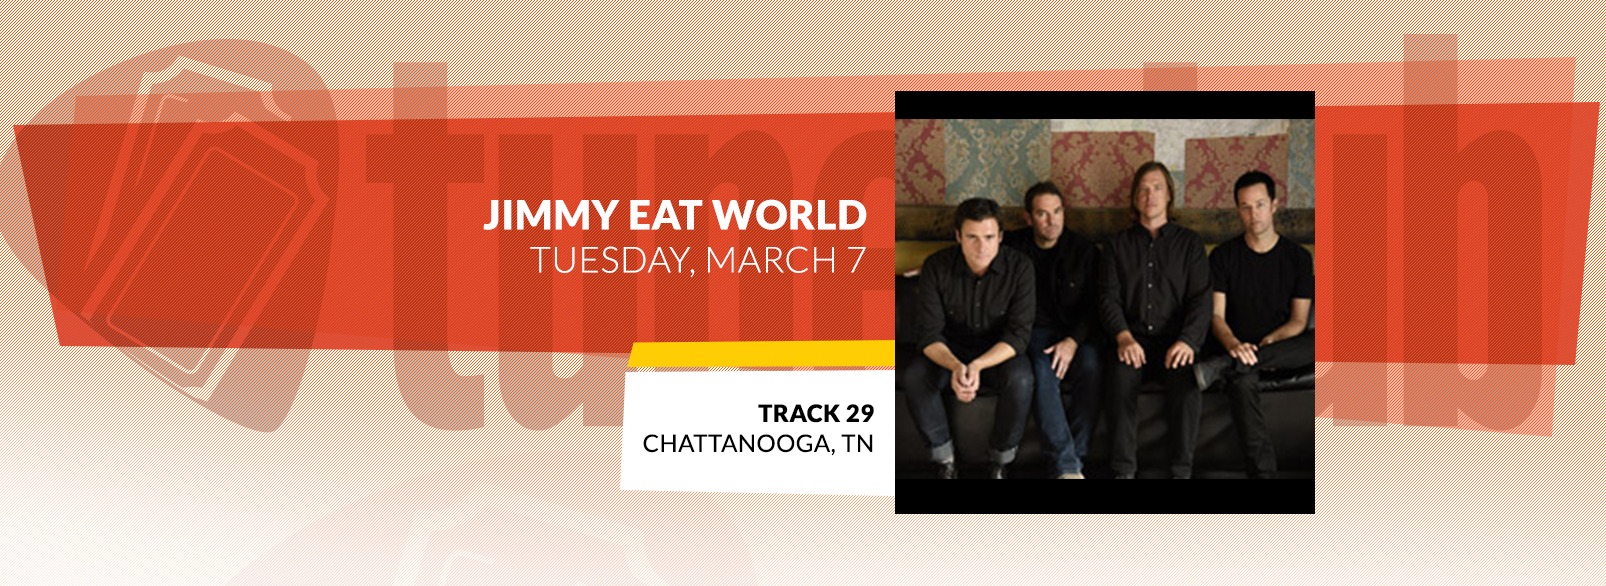 Jimmy Eat World @ Track 29